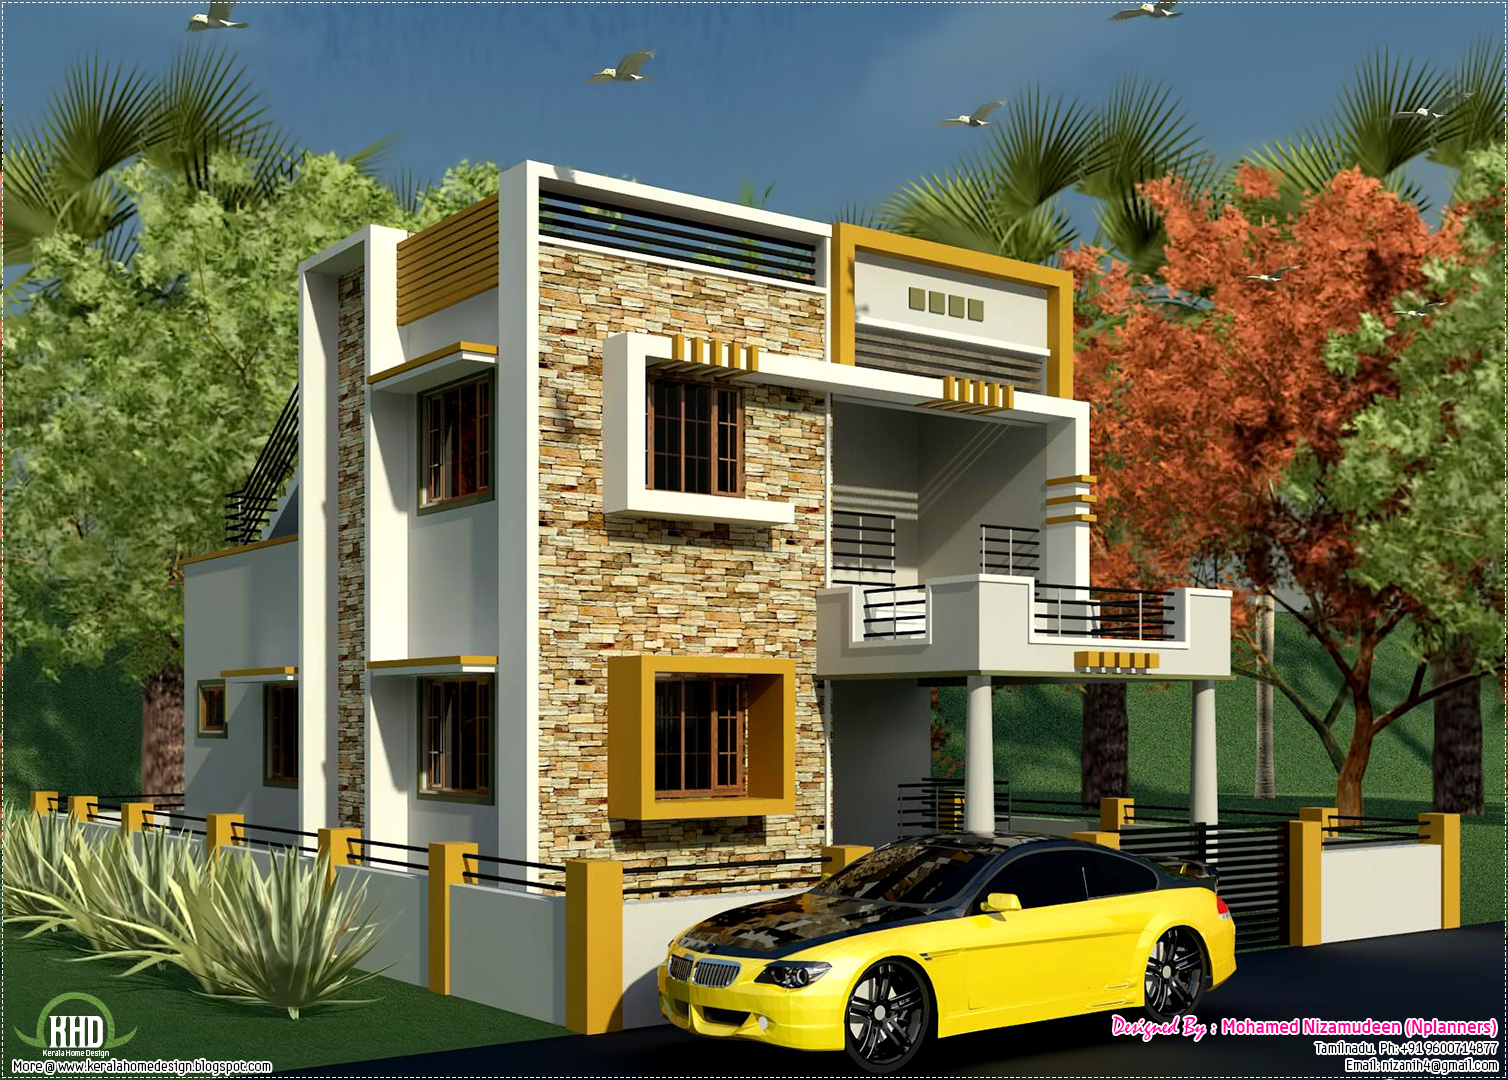 Indian Home Design: Eco Friendly Houses: South Indian Style New Modern 1460 Sq